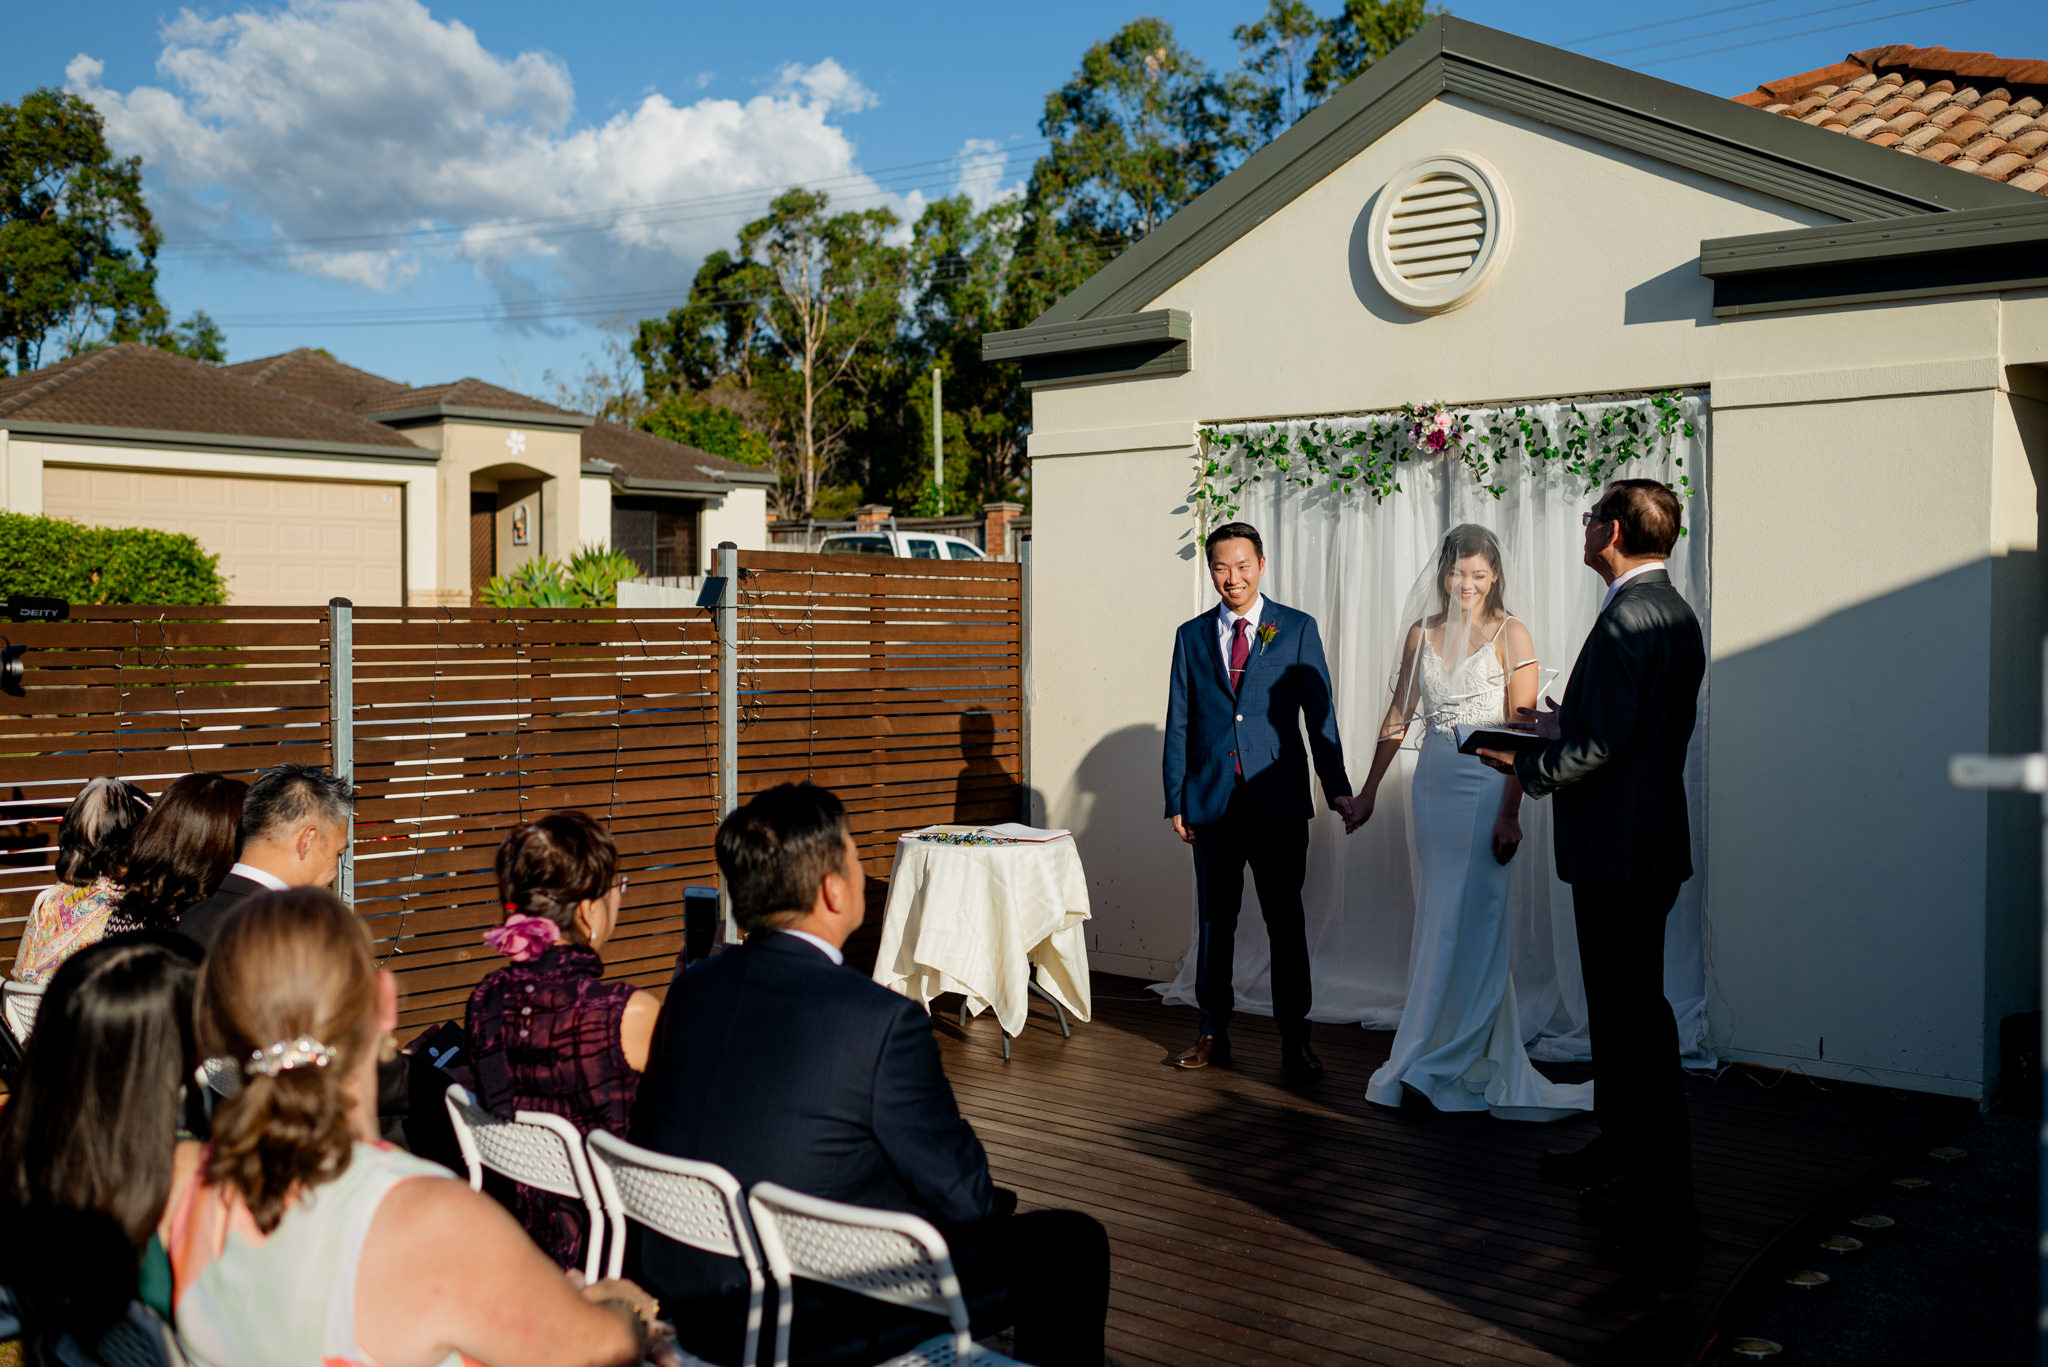 A small wedding ceremony held in a suburban home's front porch